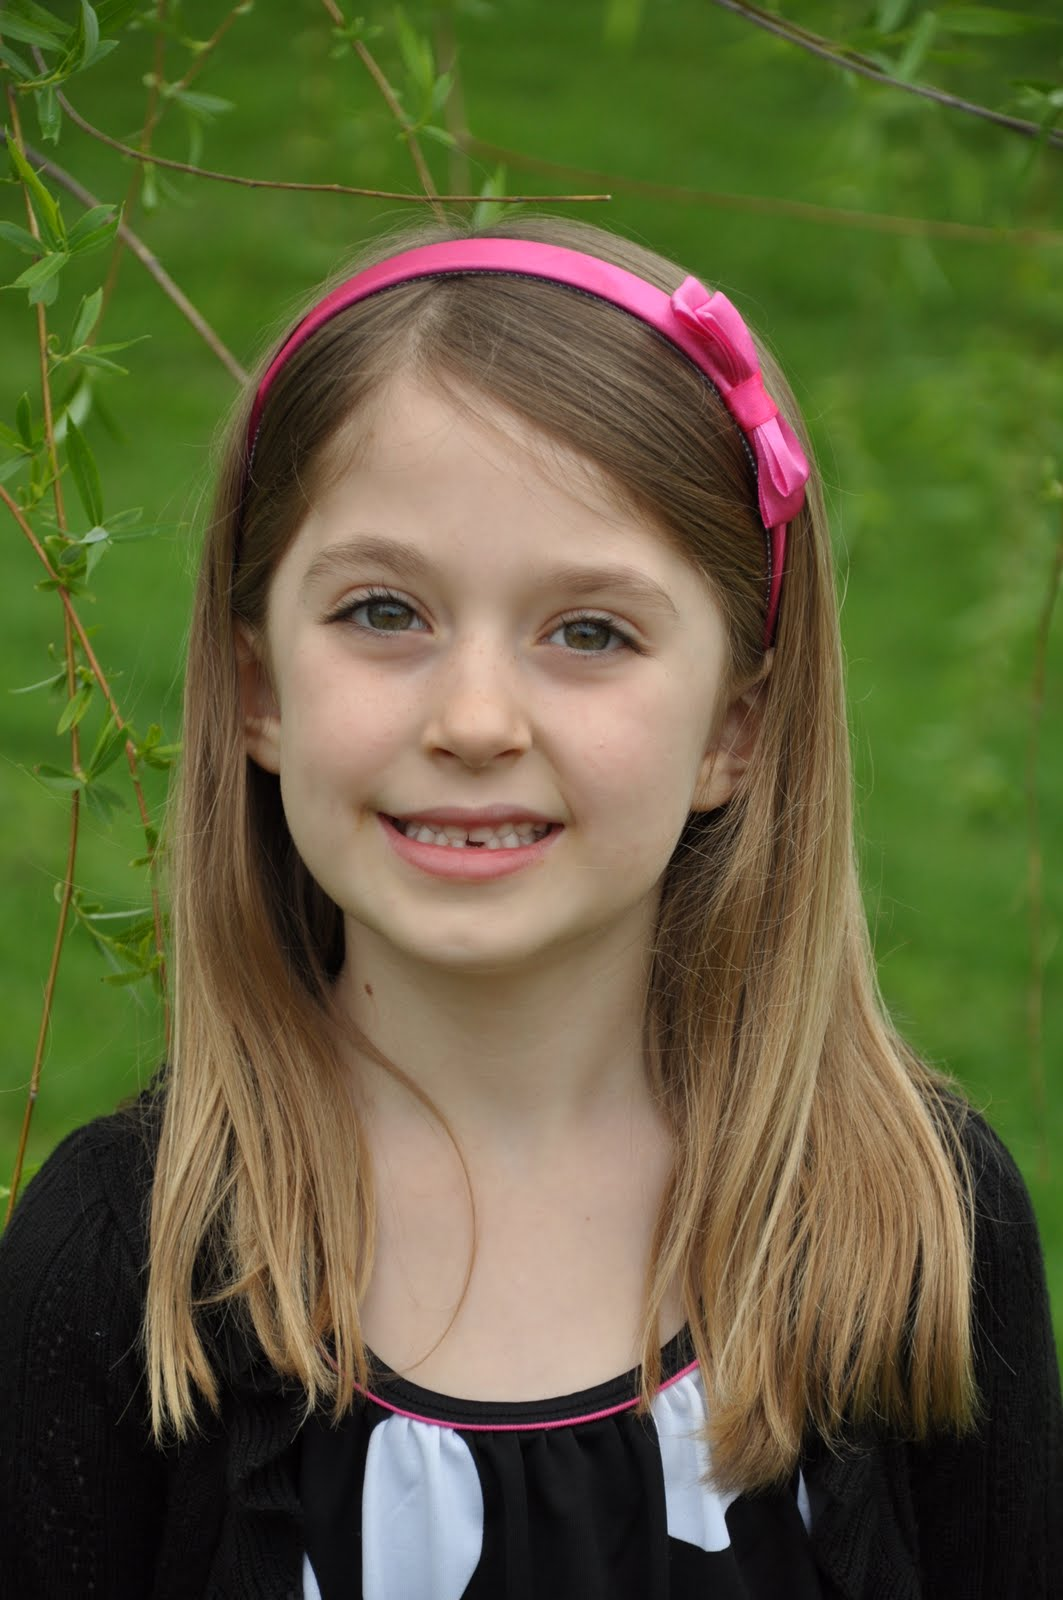 The Steg Family Chronicles: Happy 7th, Sweet Shelby Girl